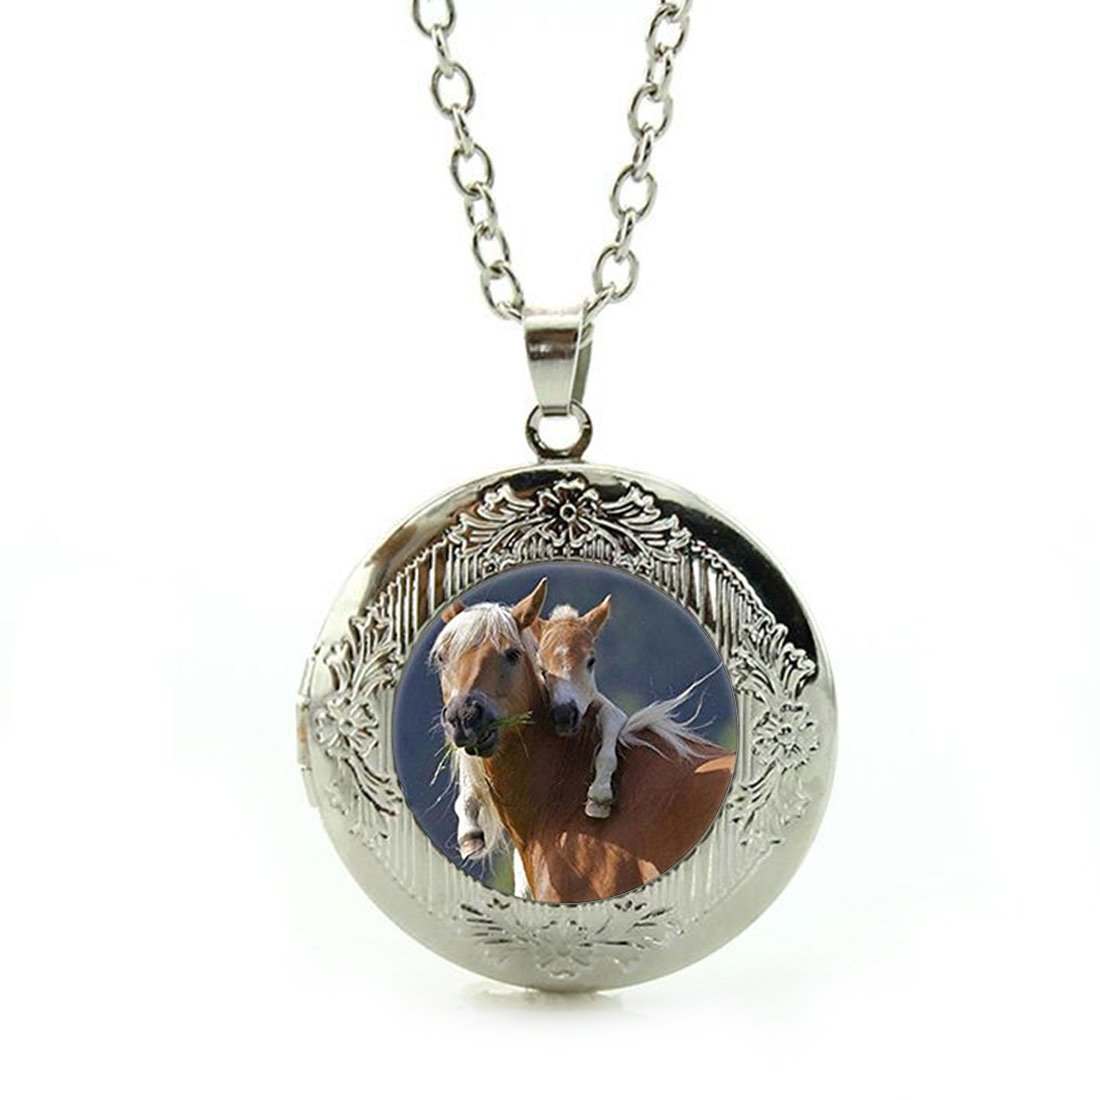 Women's Custom Locket Closure Pendant Necklace Vintage Love Horse Included Free Silver Chain, Best Gift Set